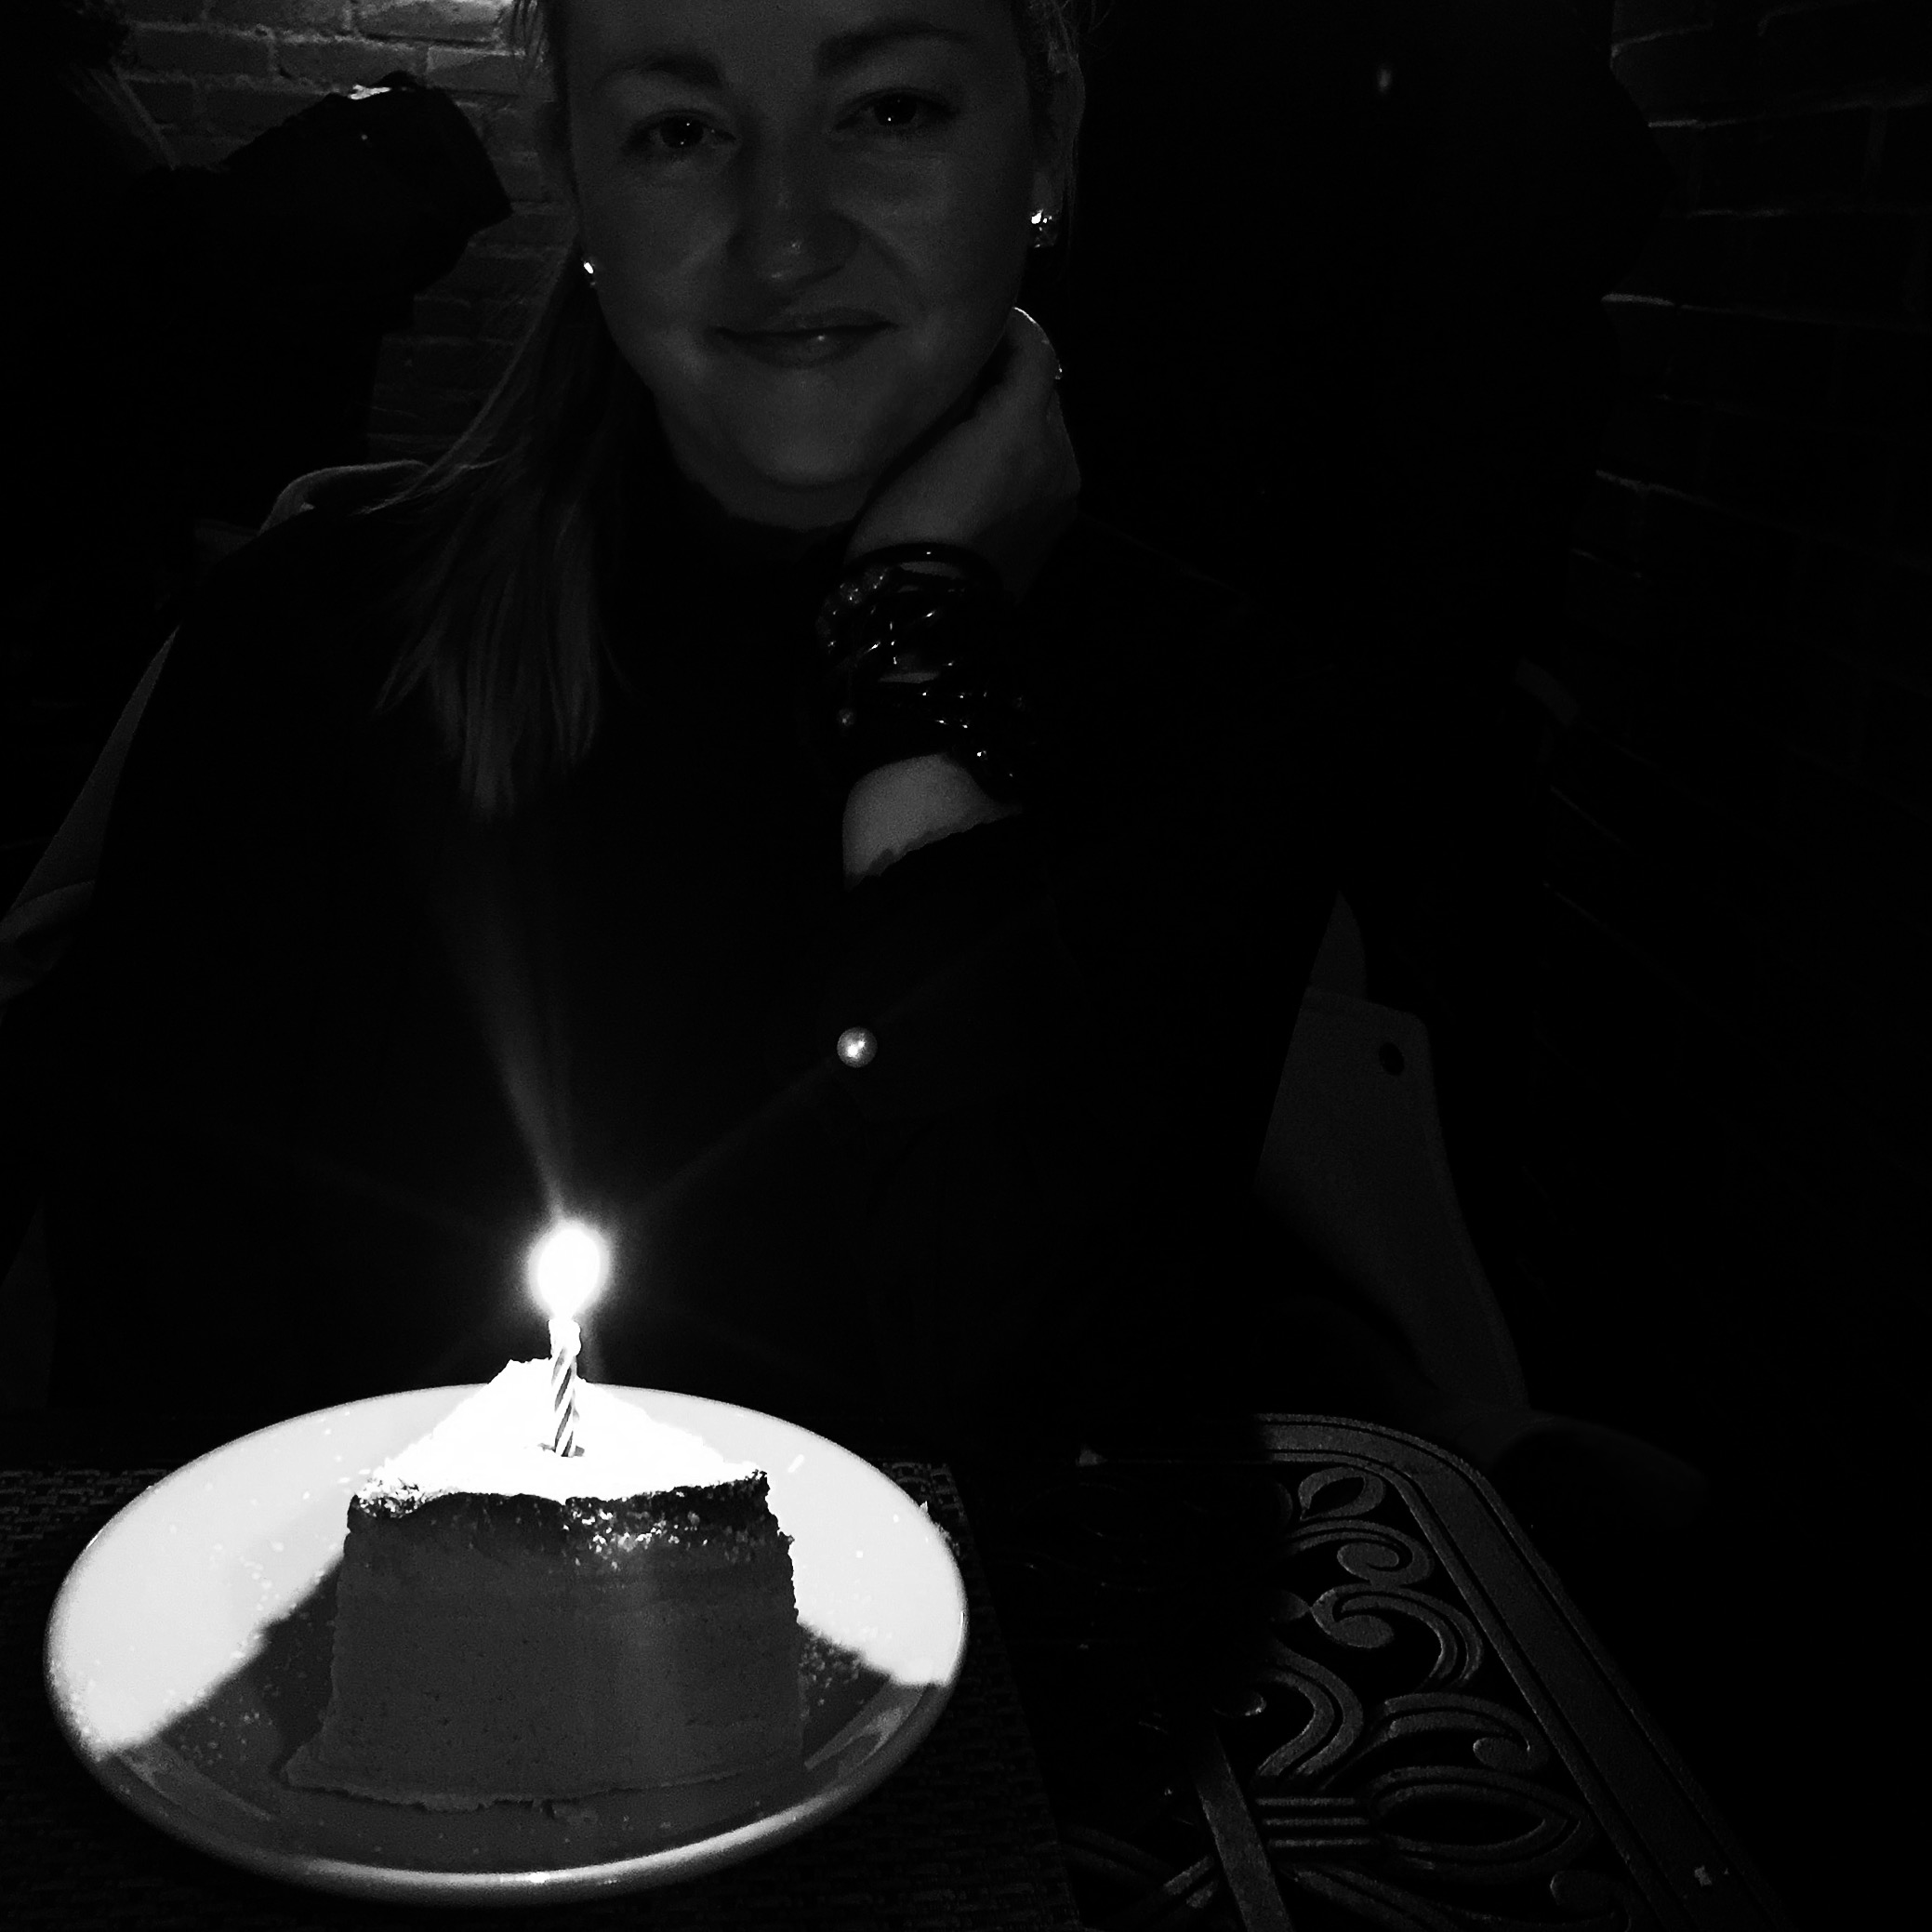 taken by Patrick at Joanne Trattoria (Lady Gaga's parents' restaurant) right before I made a wish, and blew powdered sugar all over myself.